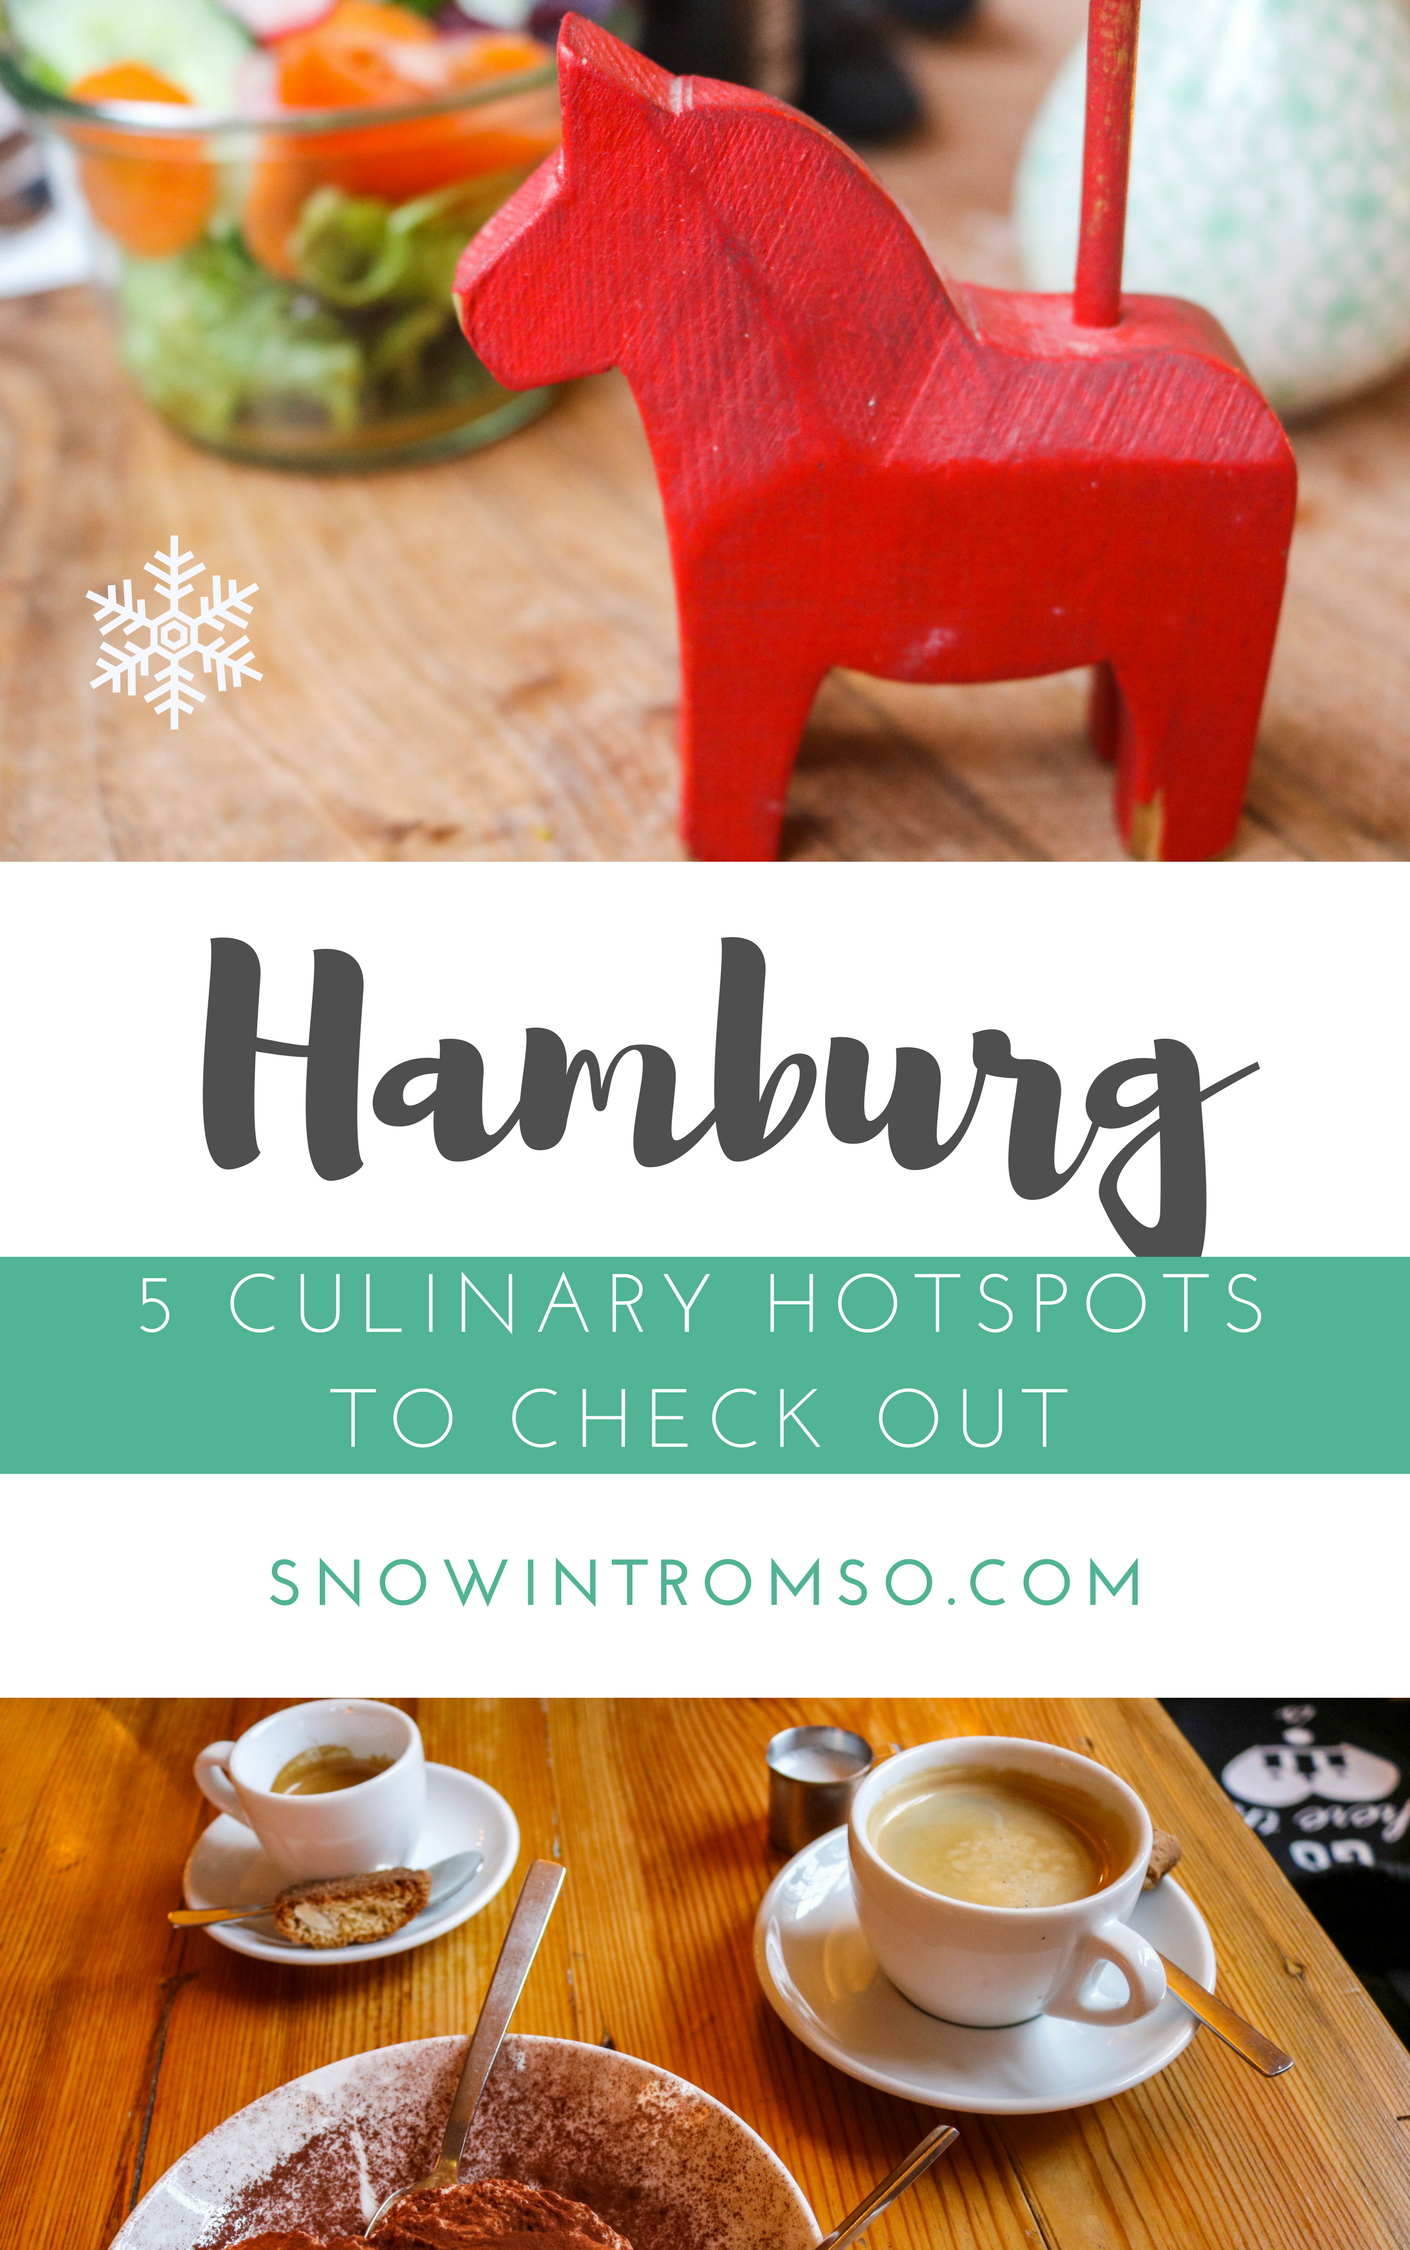 Are you headed to Hamburg and search for places to eat and drink at? Click through to find 5 culinary hotspots you should totally check out!